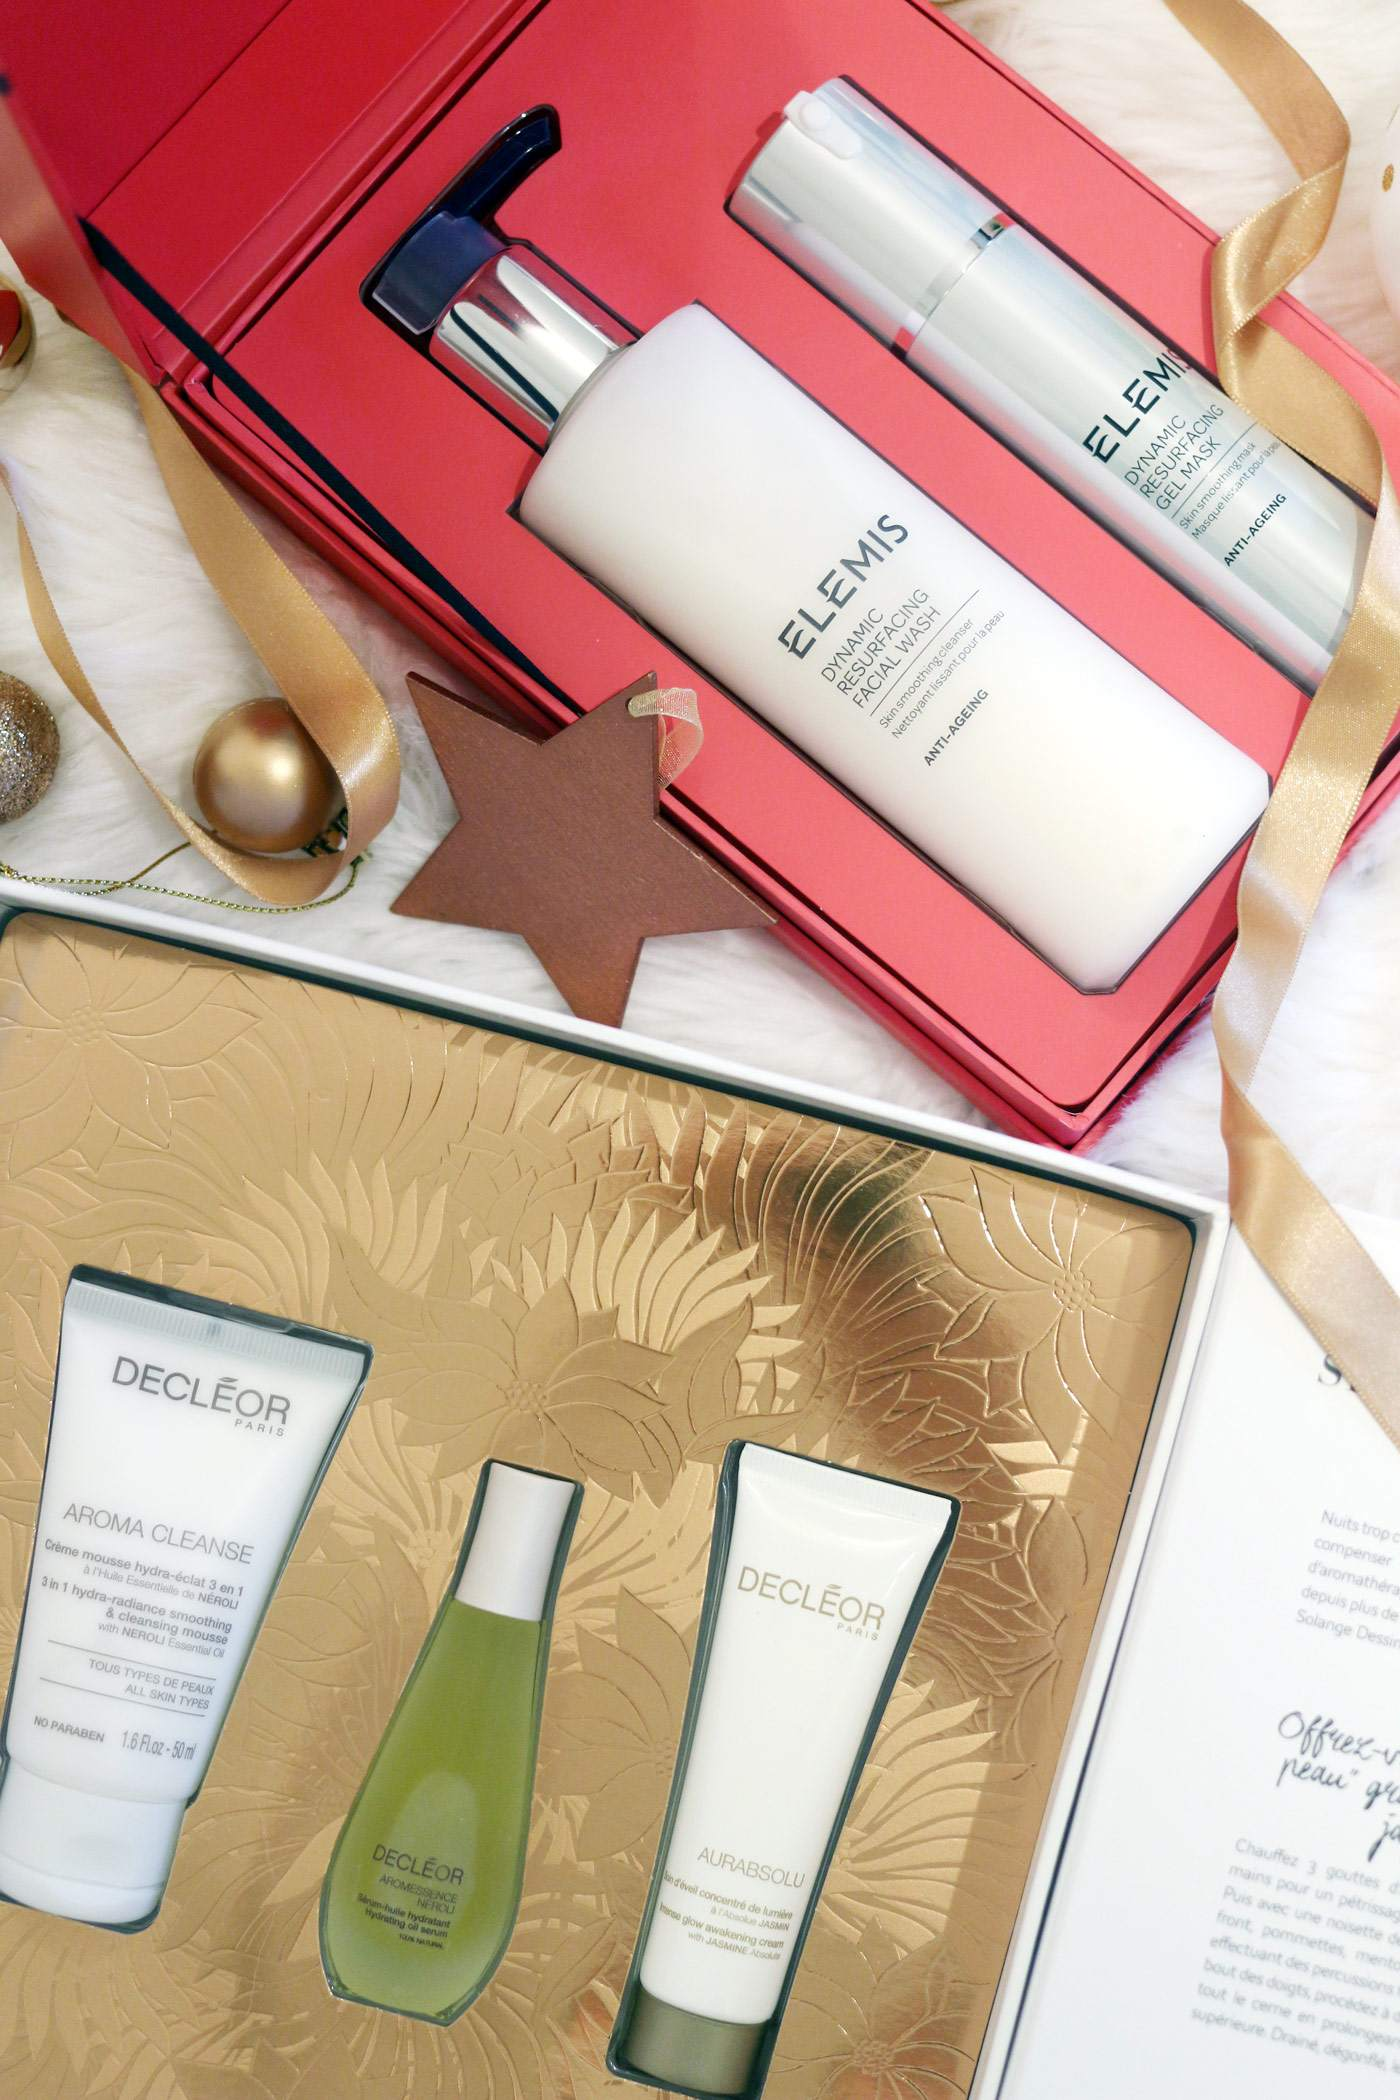 christmas-gift-guide-skincare-liz-earle-decleor-dhc-beauty-bento-1